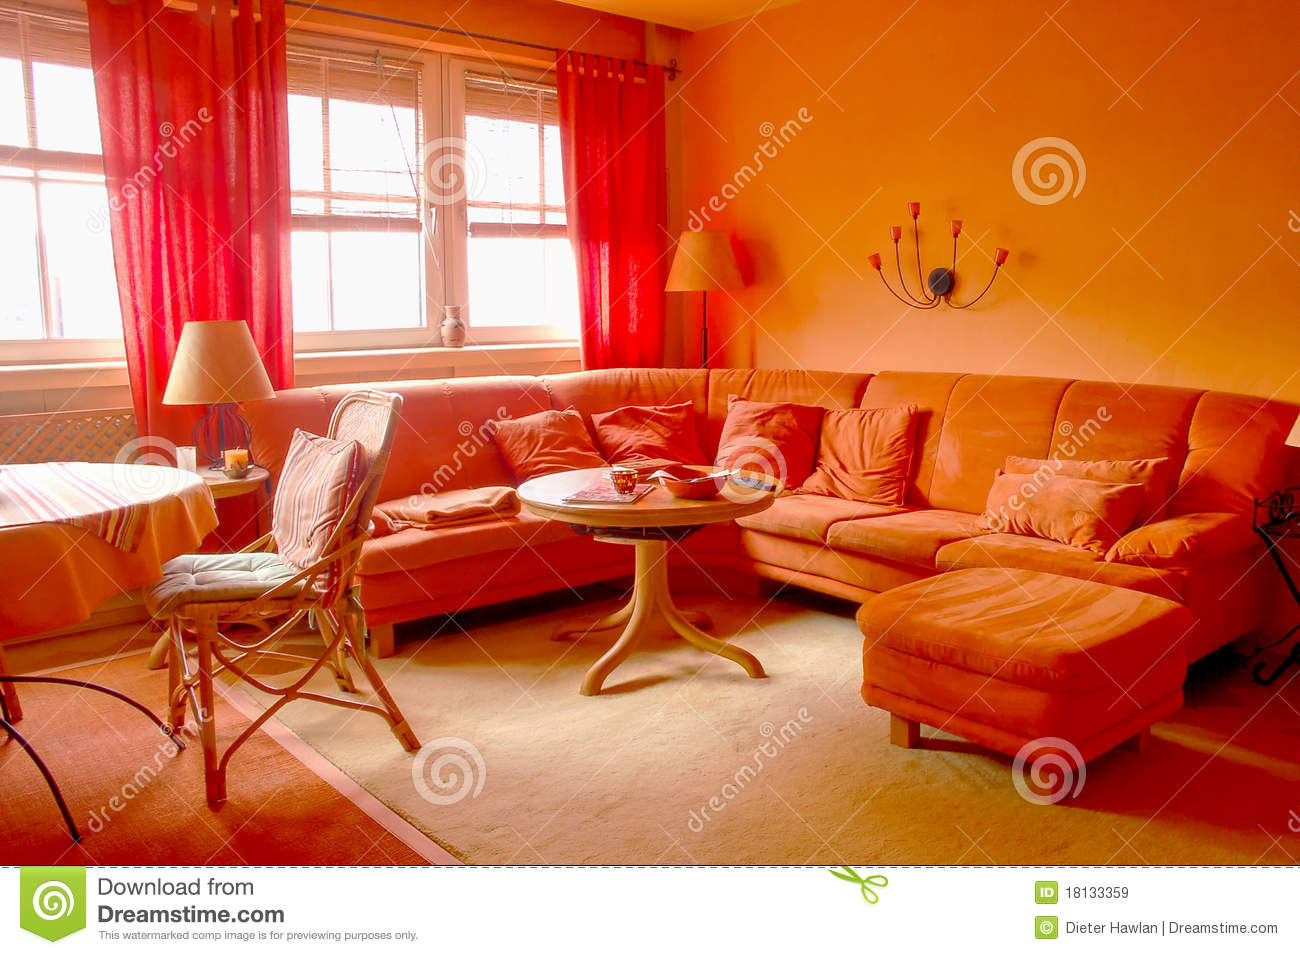 Living Room Red And Orange Living Room orange living room royalty free stock images image 18133359 room